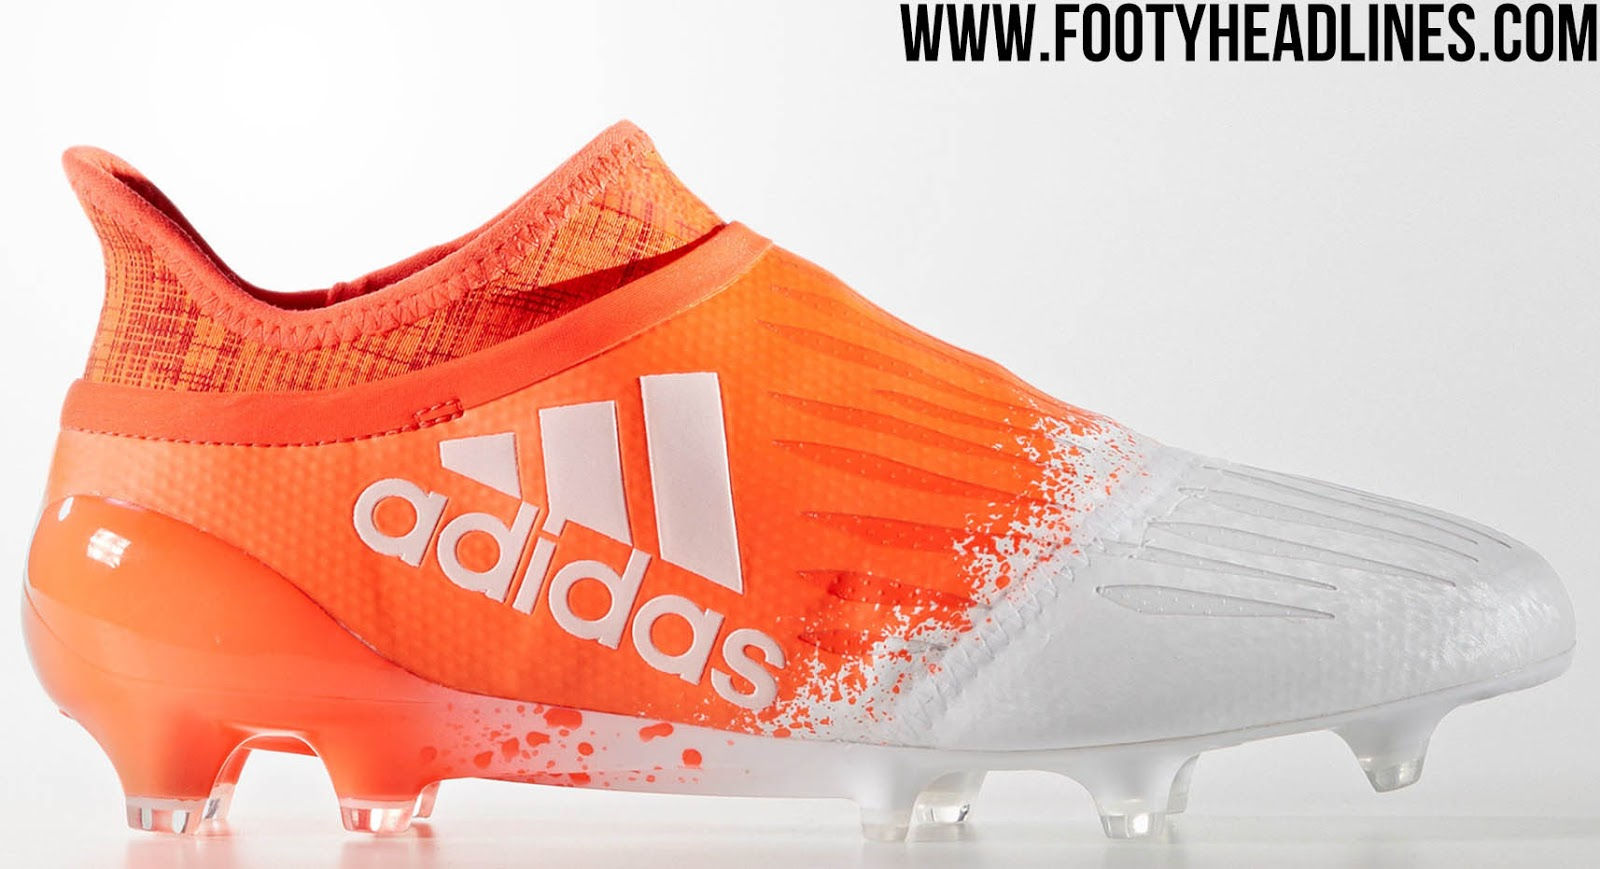 This is the first-ever Women s paint job of the Adidas X PureChaos Soccer  Boots. 38701a6e6d